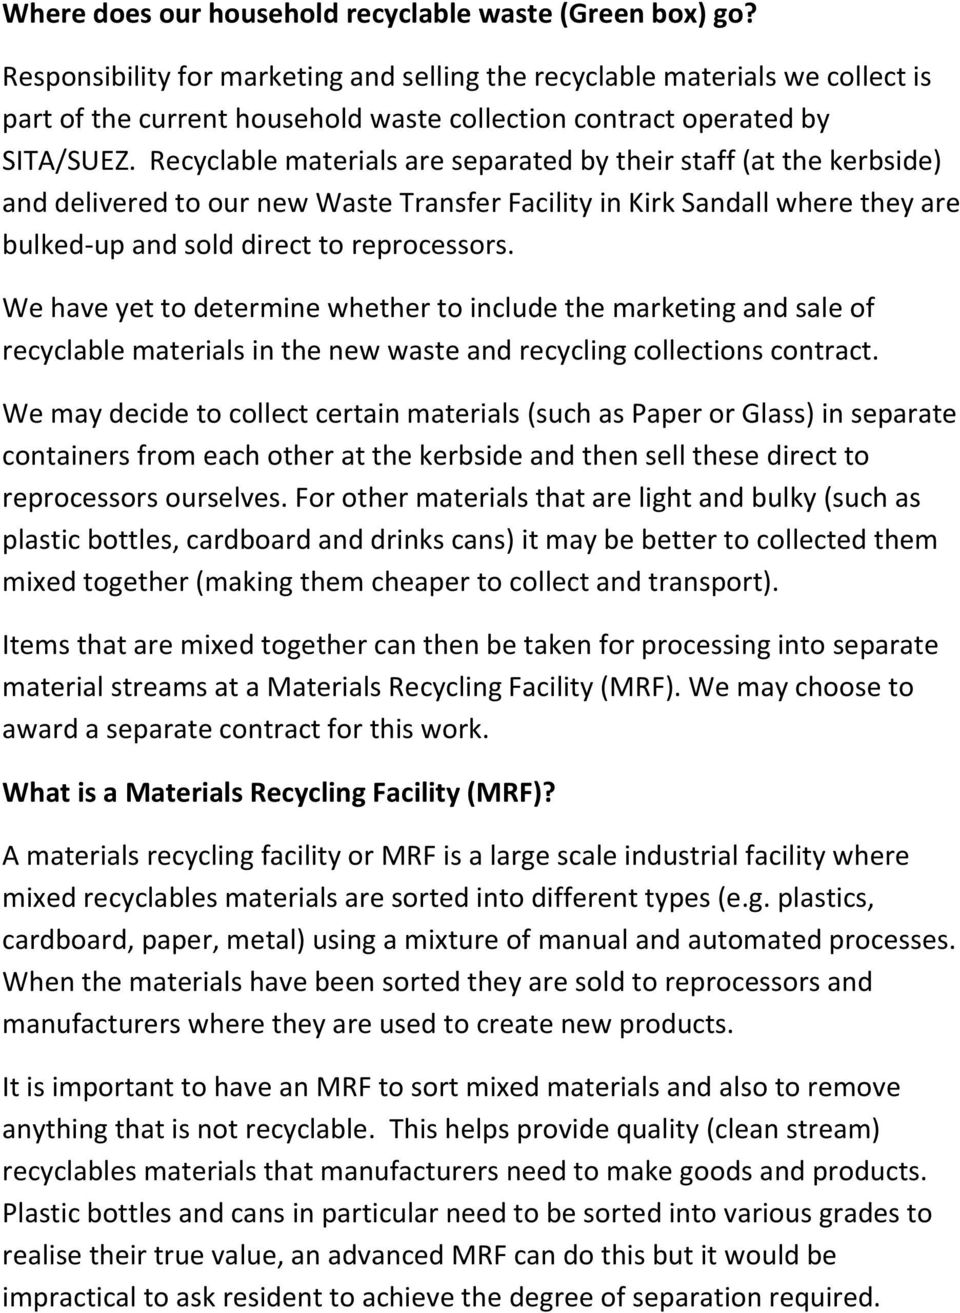 Recyclable materials are separated by their staff (at the kerbside) and delivered to our new Waste Transfer Facility in Kirk Sandall where they are bulked-up and sold direct to reprocessors.